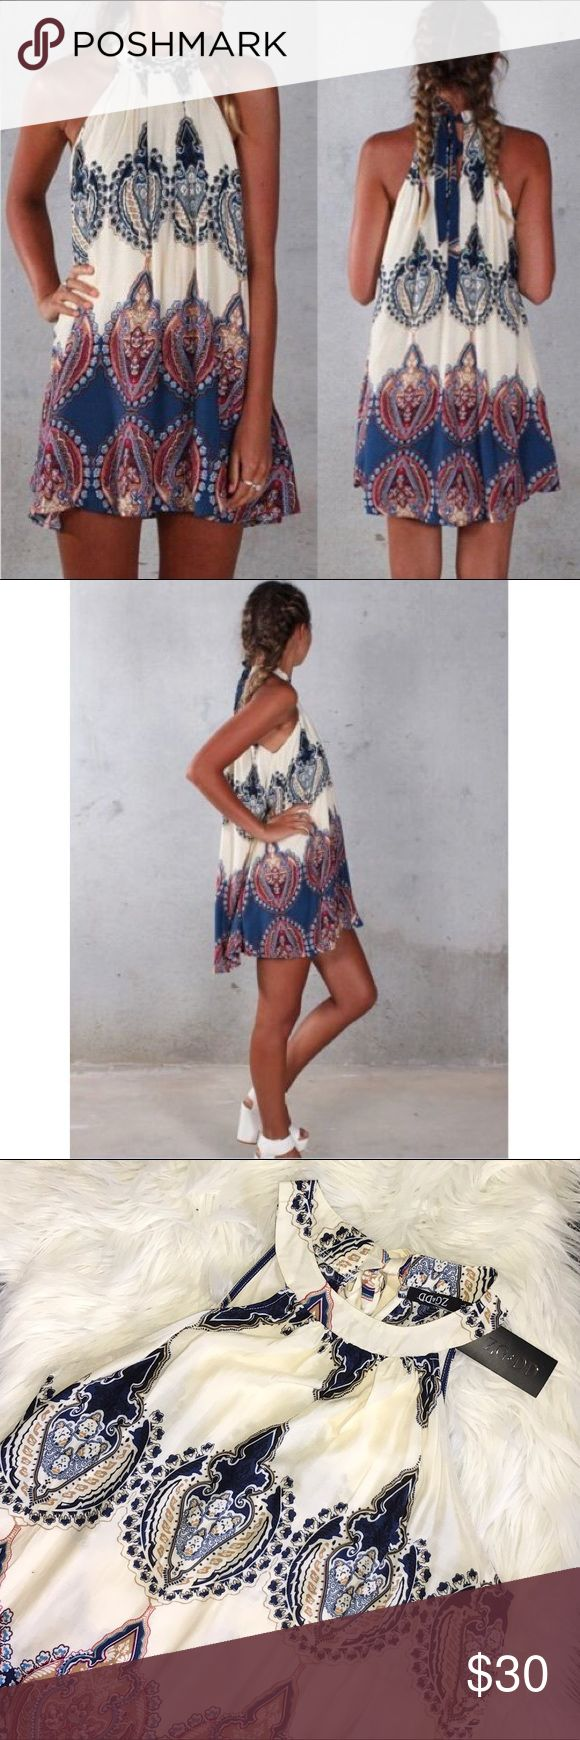 """NWT Boho Sleeveless Print Mini Sun Dress Cover Up Light airy Boho dress is new with tags.  Ties at neck in back.  Sleeveless.   Pull on.  Actual item pictured after pics #1 & 2.   Stock photos show fit.   Tag size XL but fits more like Large.   Approx:  pit to pit laying flat 21.5"""",  length 32"""".  100% rayon. ZG&DD Dresses Mini"""